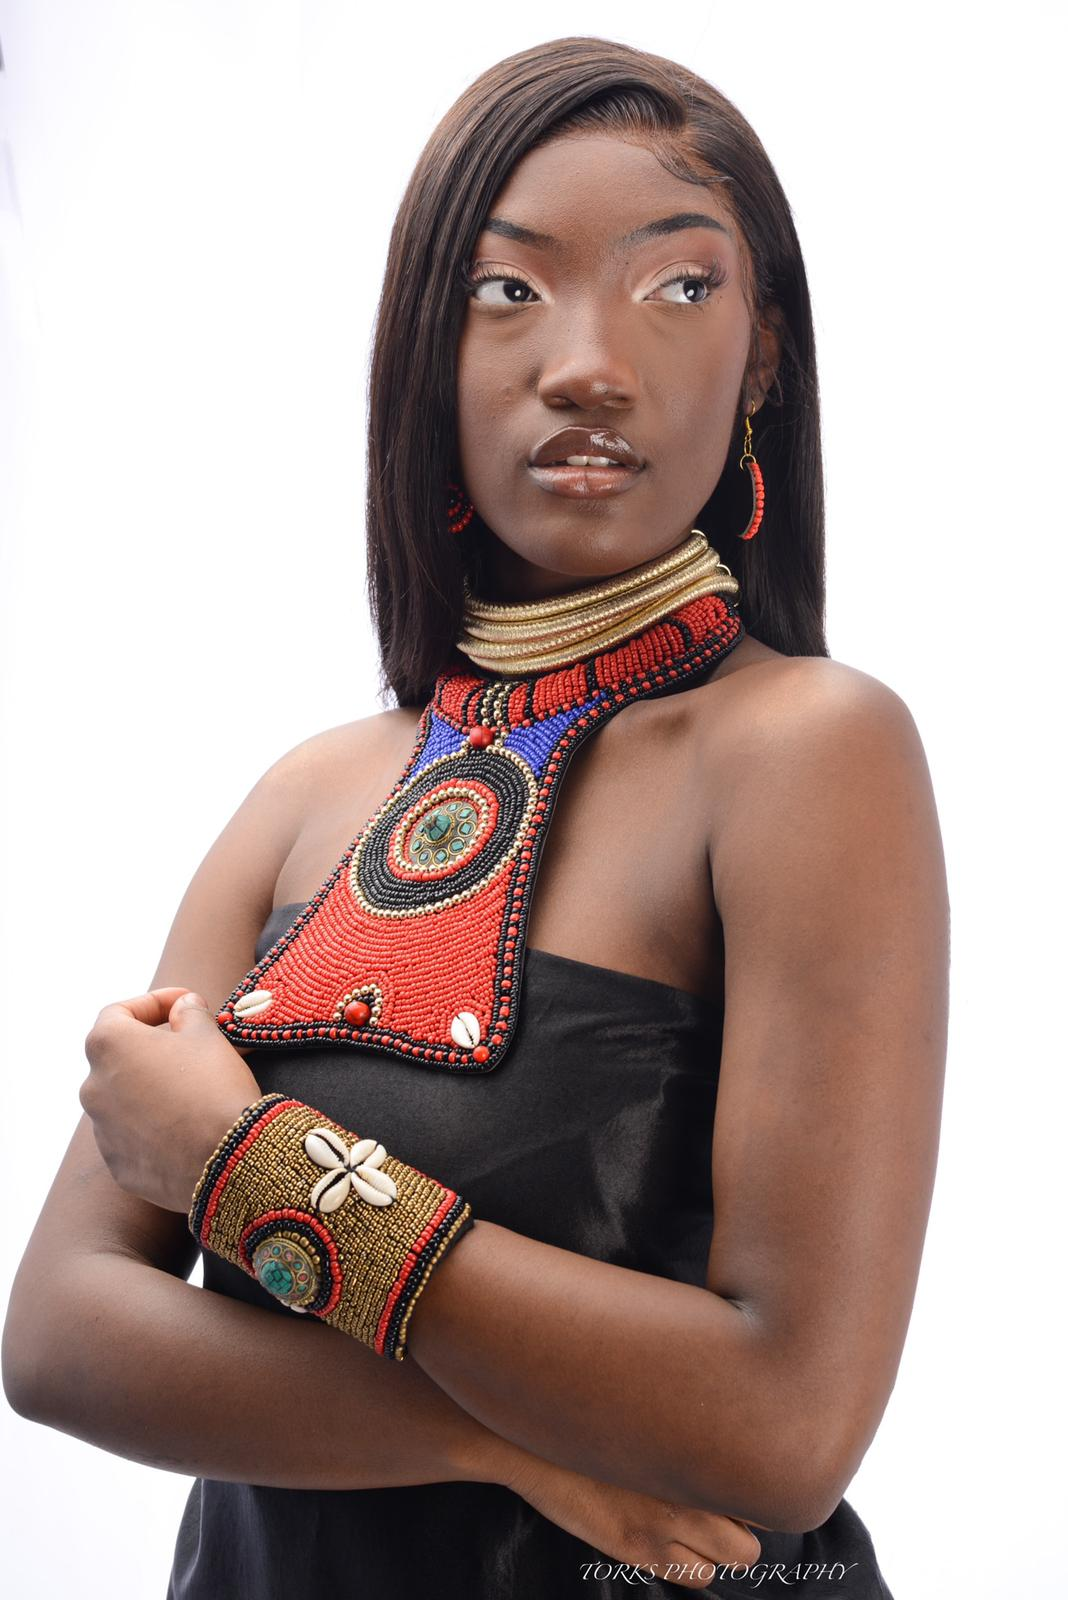 african model with colorful rasied bib necklace and matching bracelet